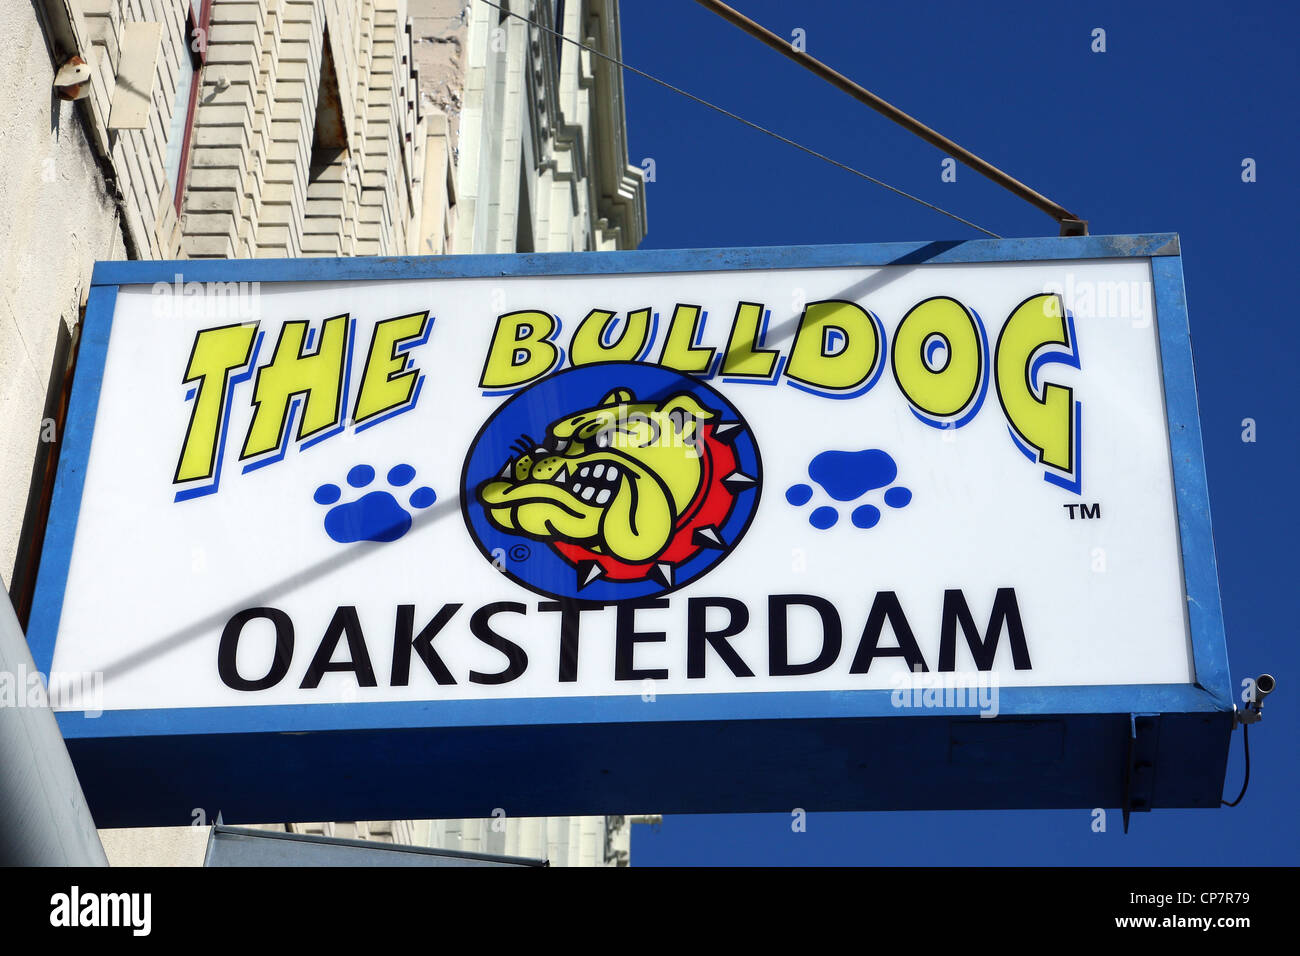 THE BULLDOG COFFEESHOP CANNABIS COFFEESHOP 06 October 2011 - Stock Image